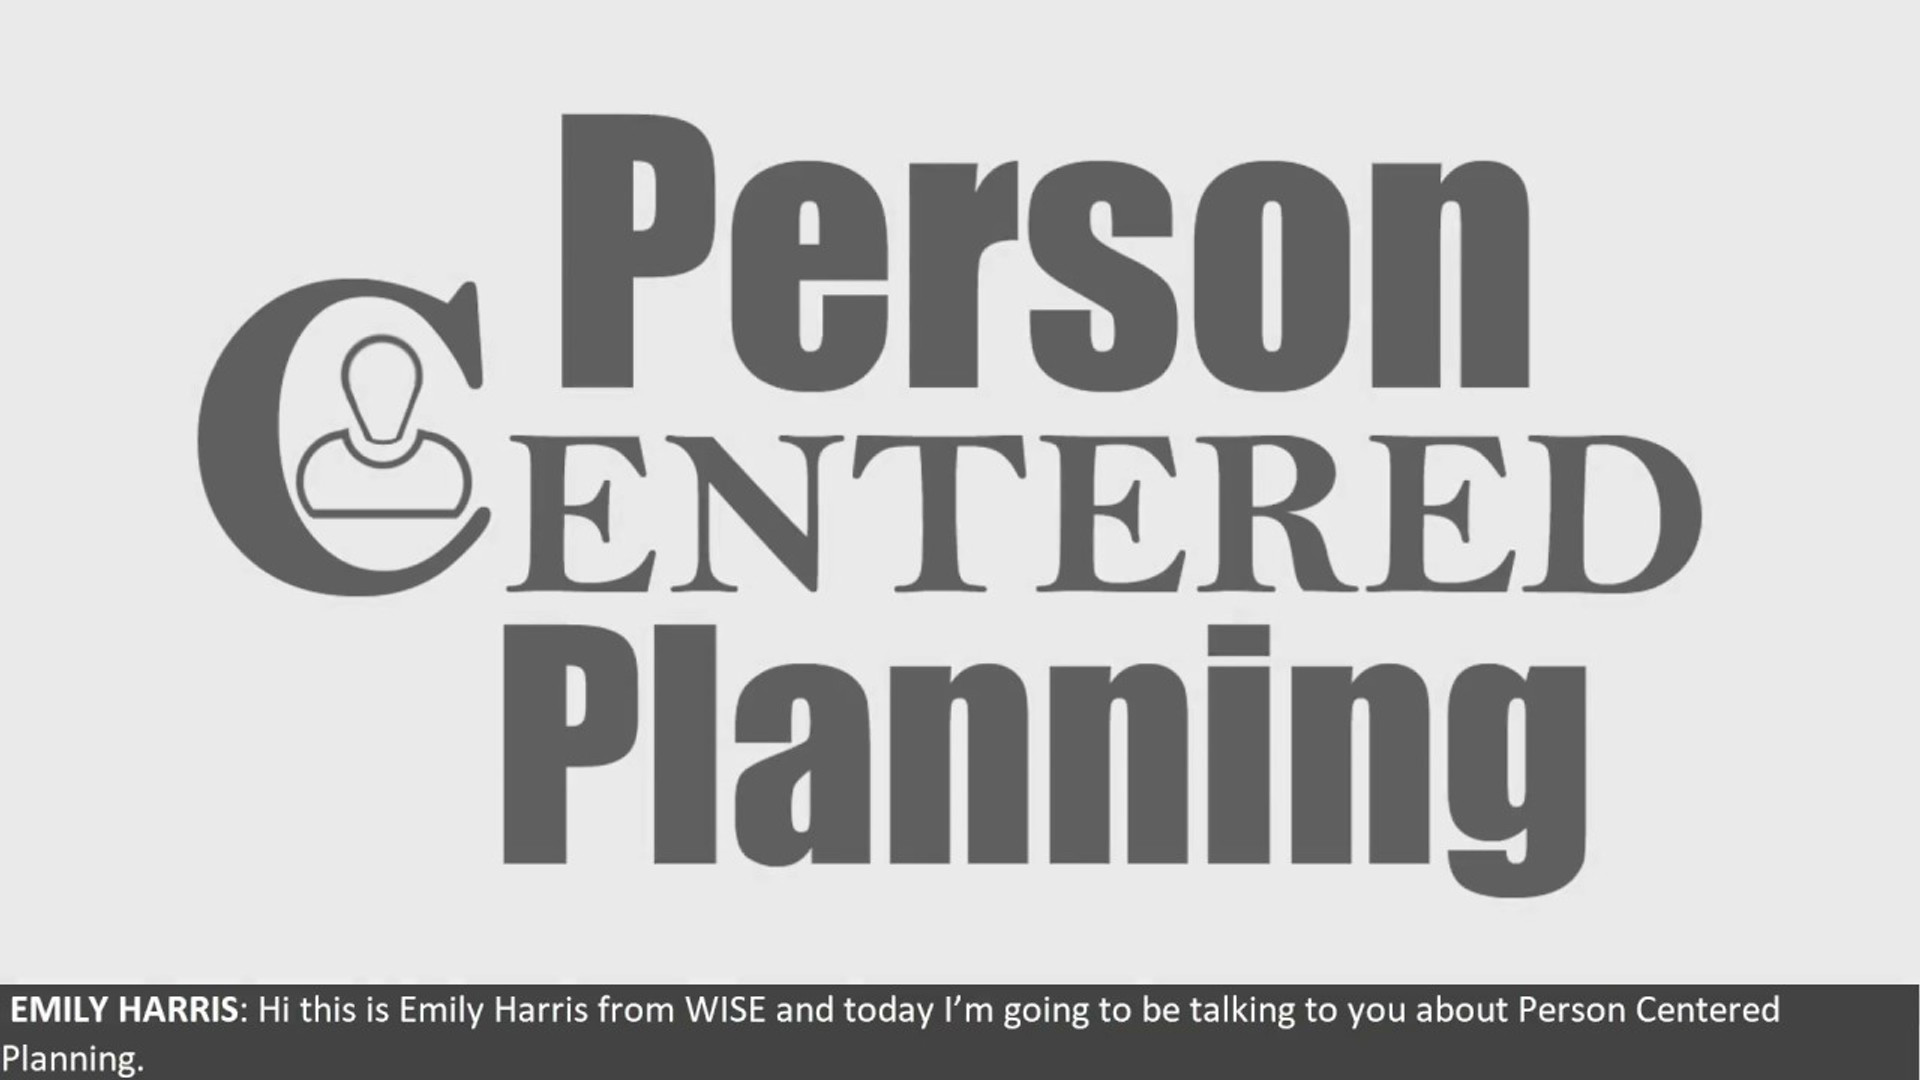 What Is Person Centered Planning?